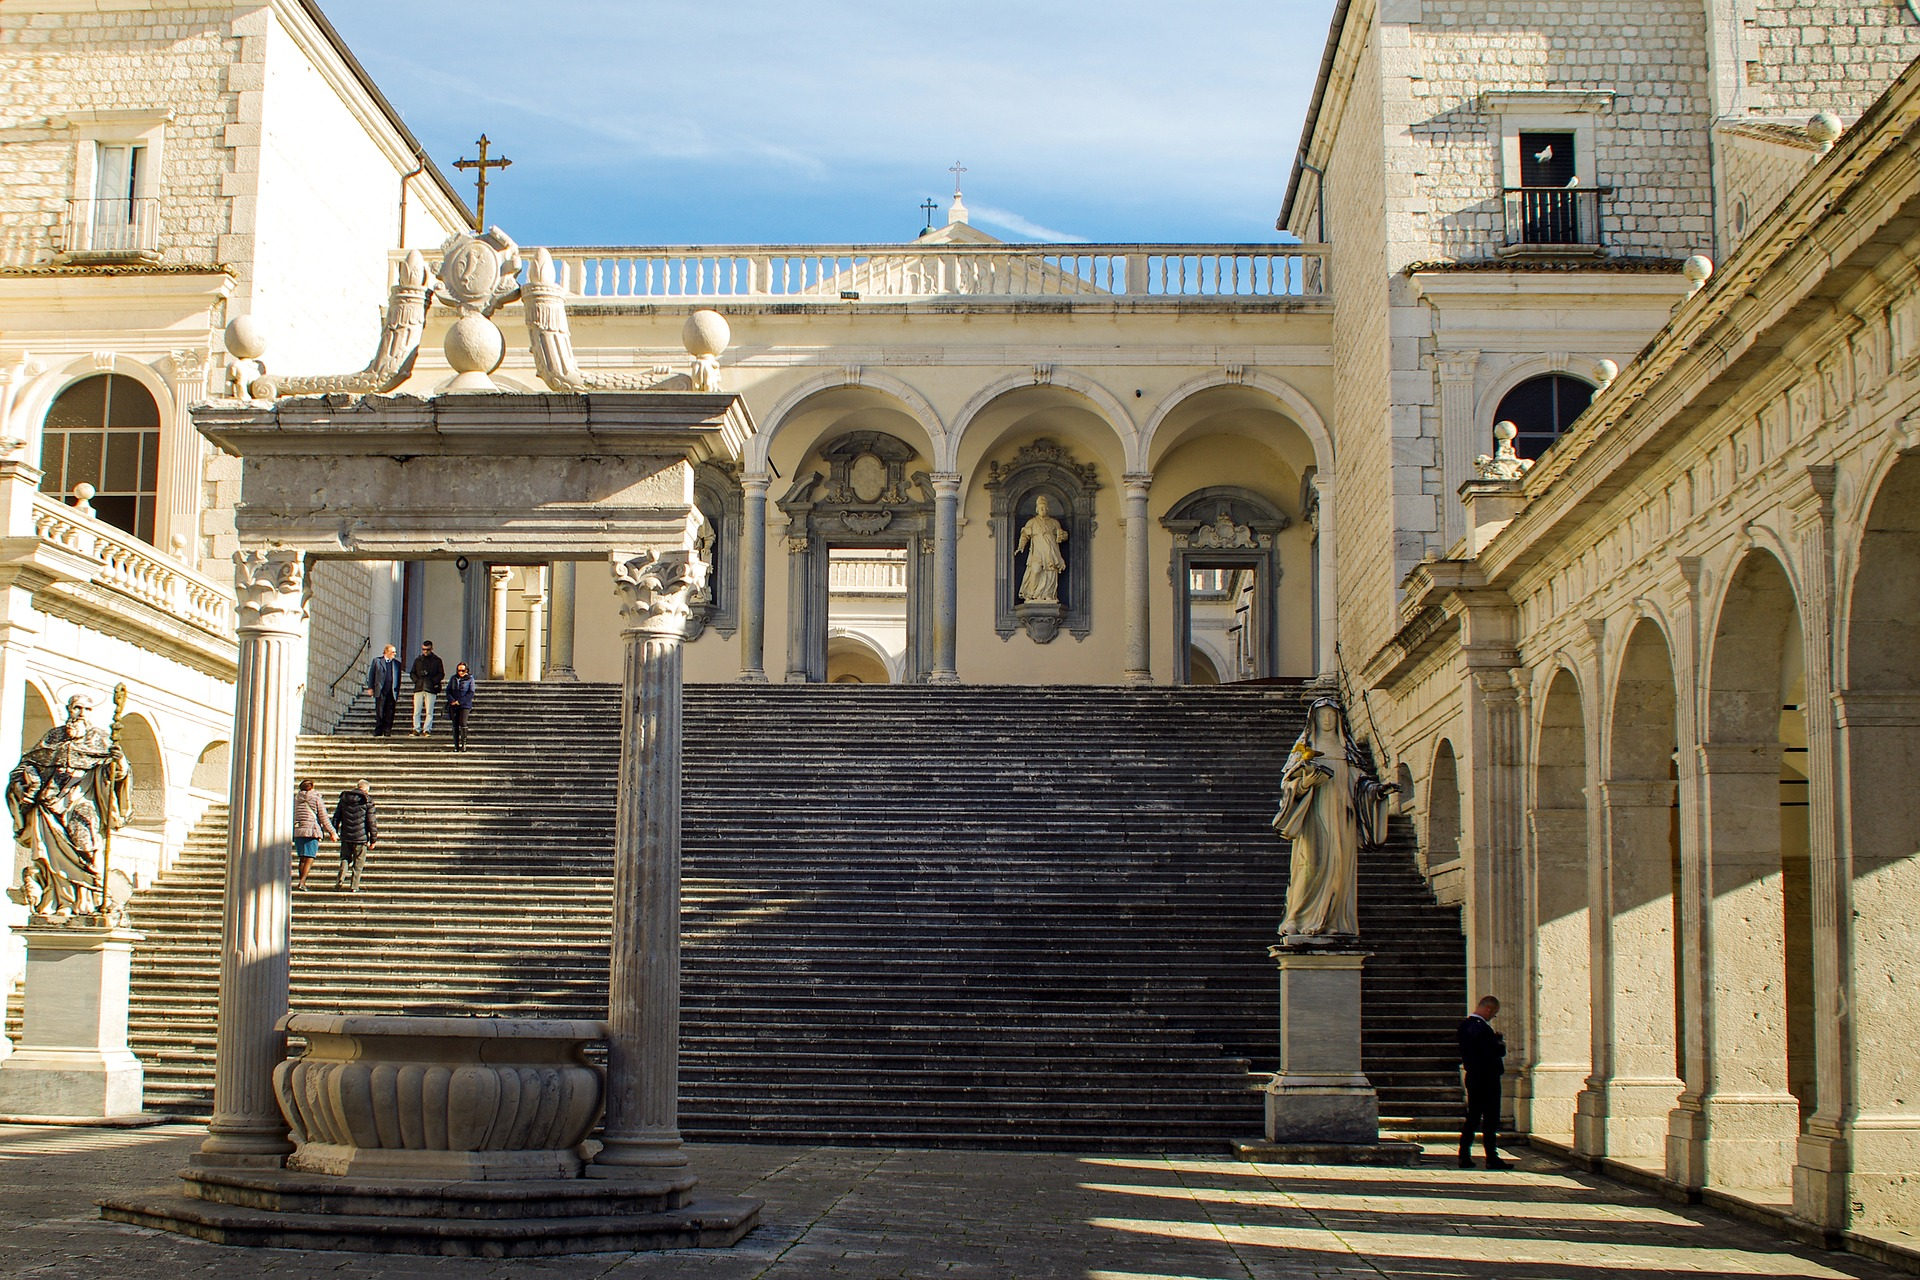 abbey-montecassino-1688650_1920